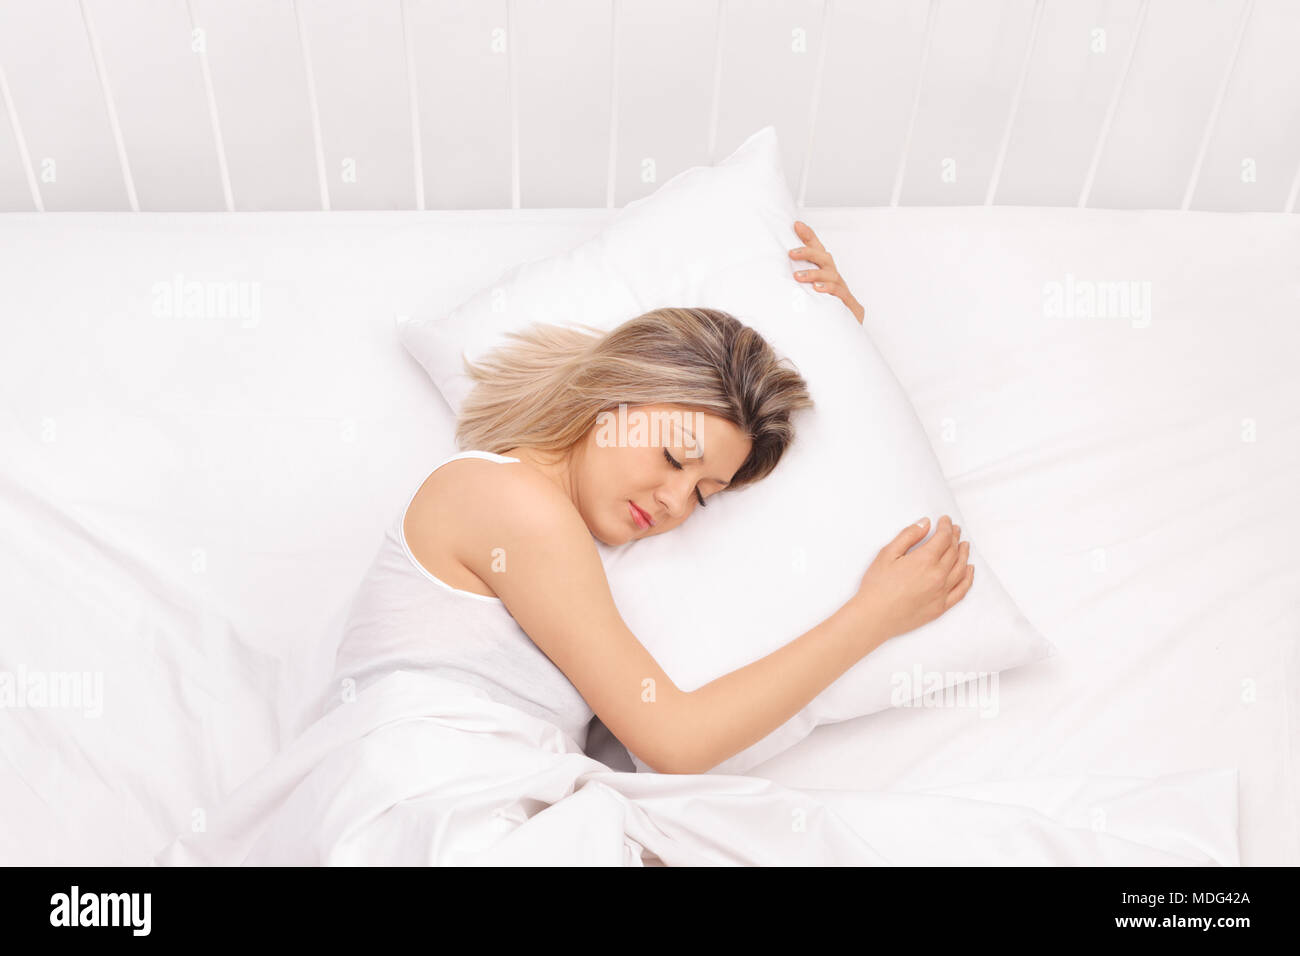 Woman sleeping in bed - Stock Image